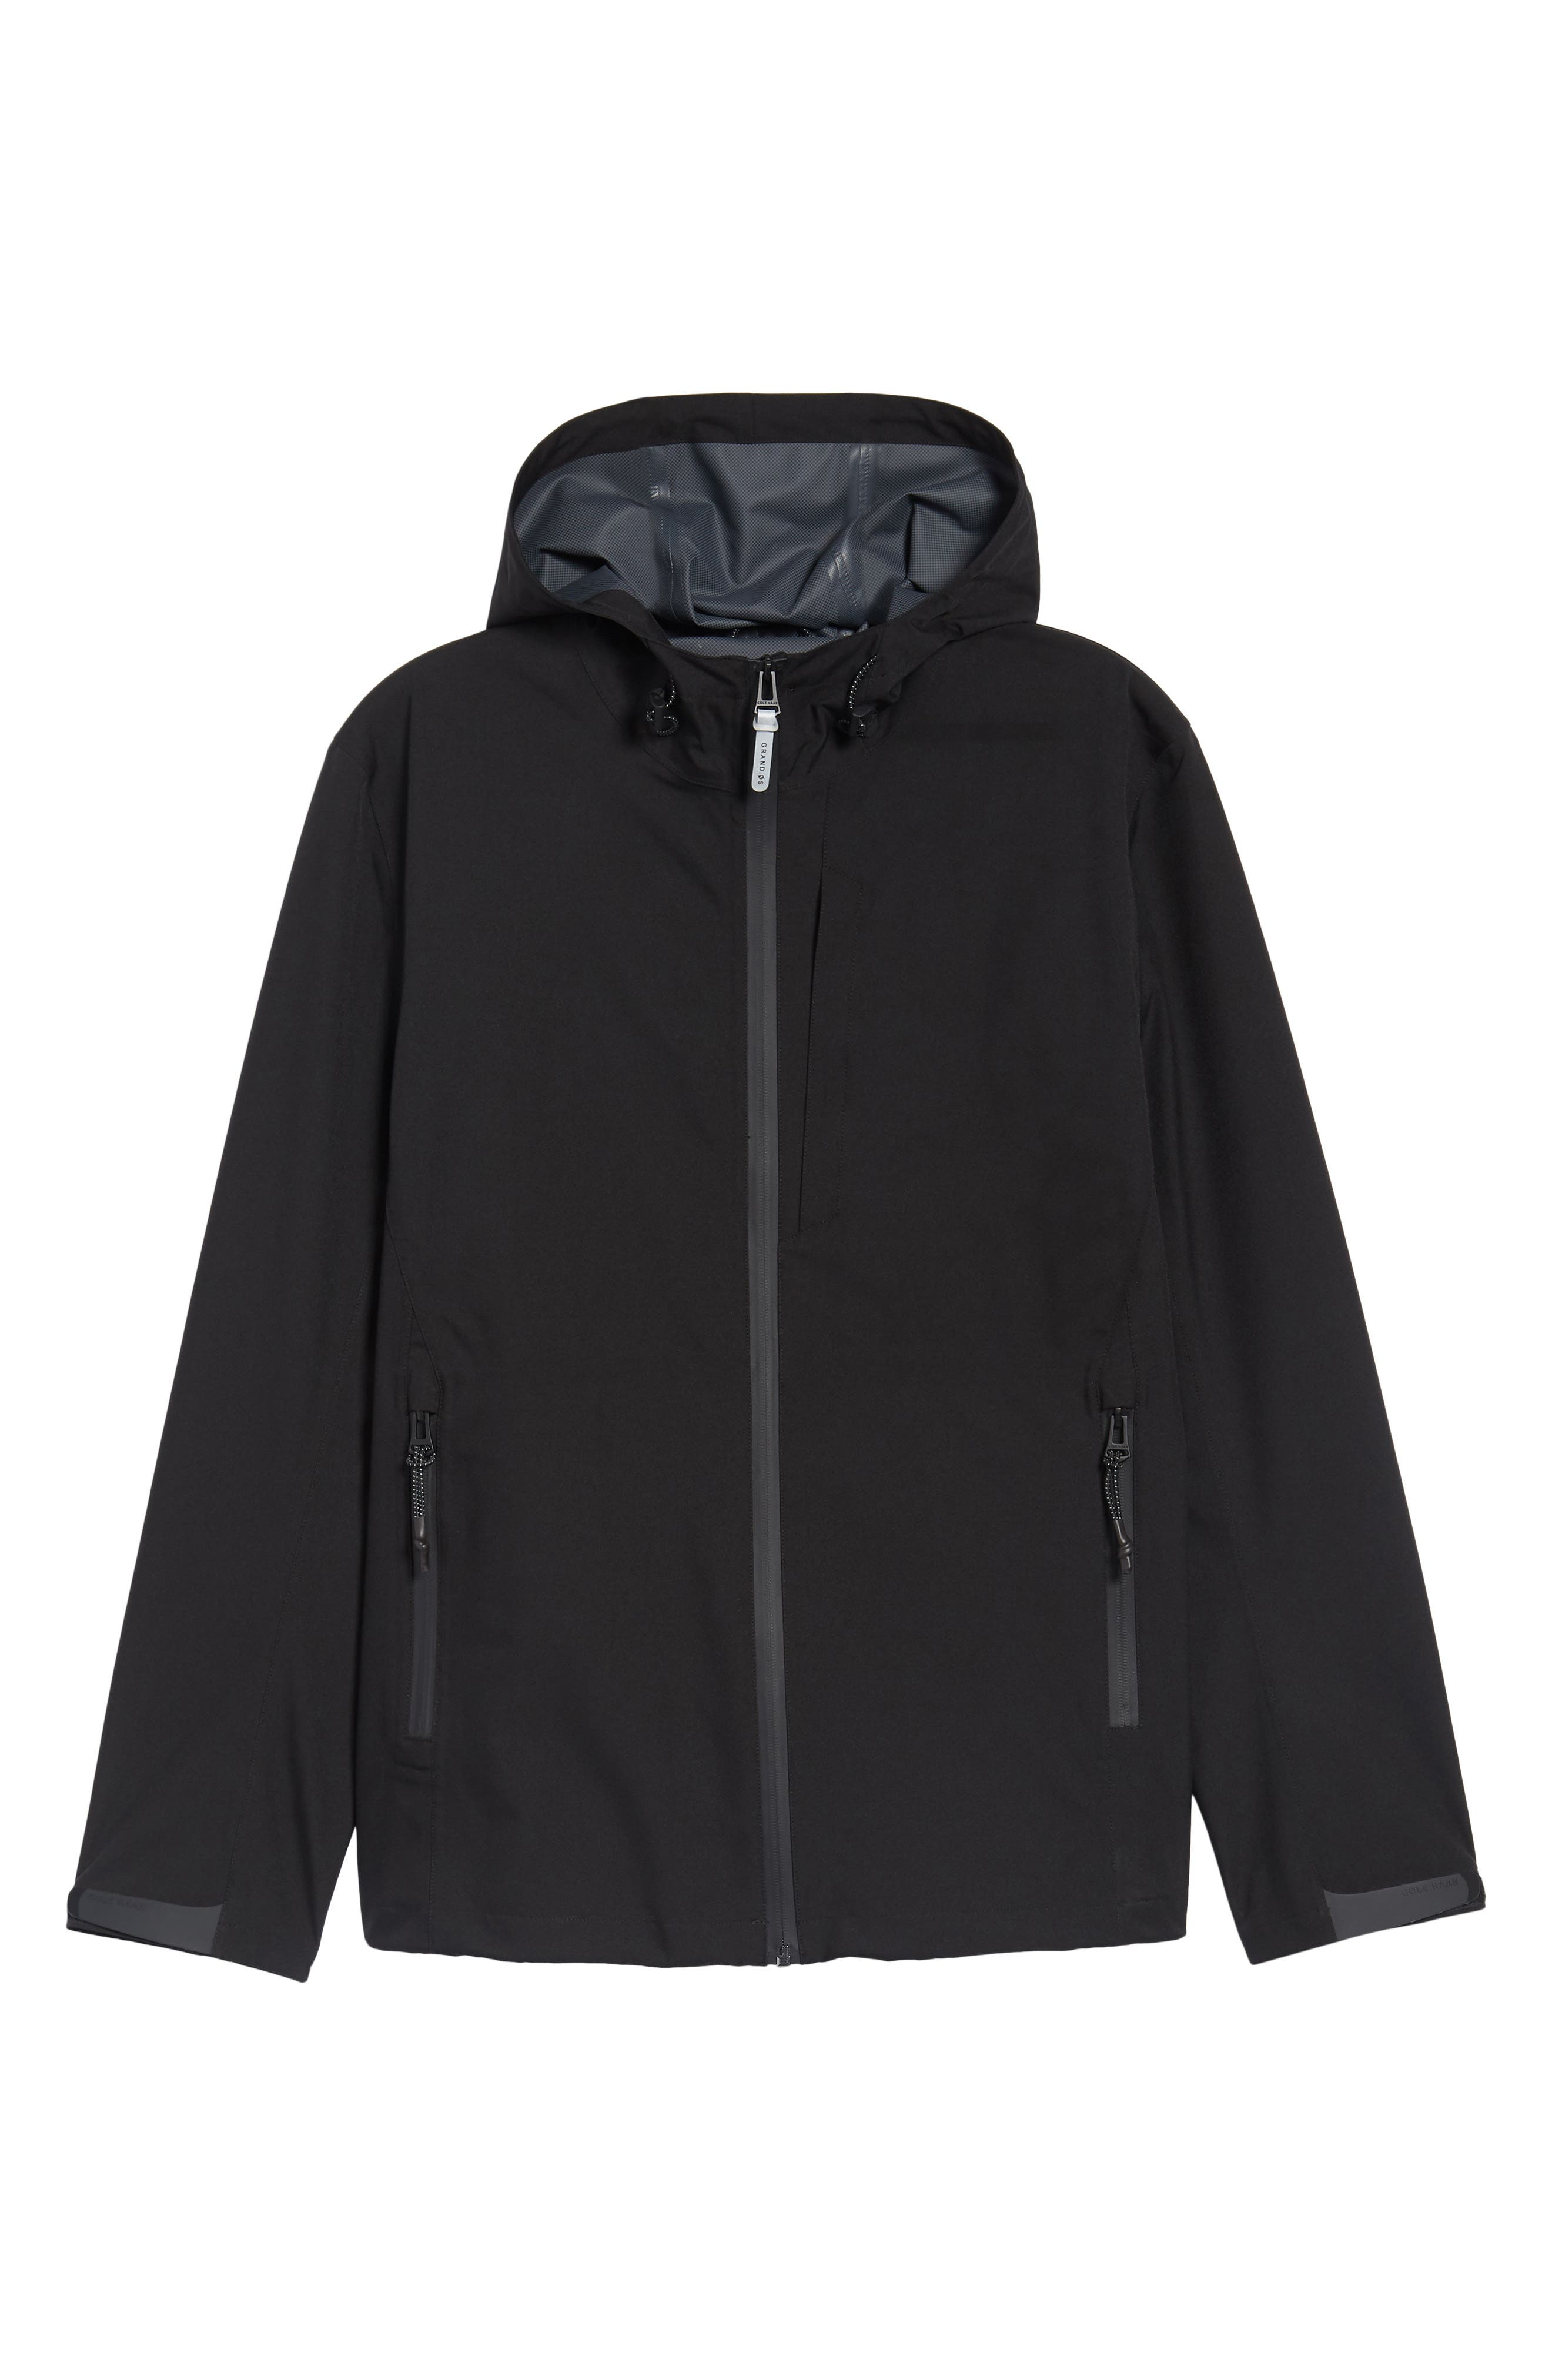 Seam Sealed Packable Jacket,                             Alternate thumbnail 5, color,                             BLACK